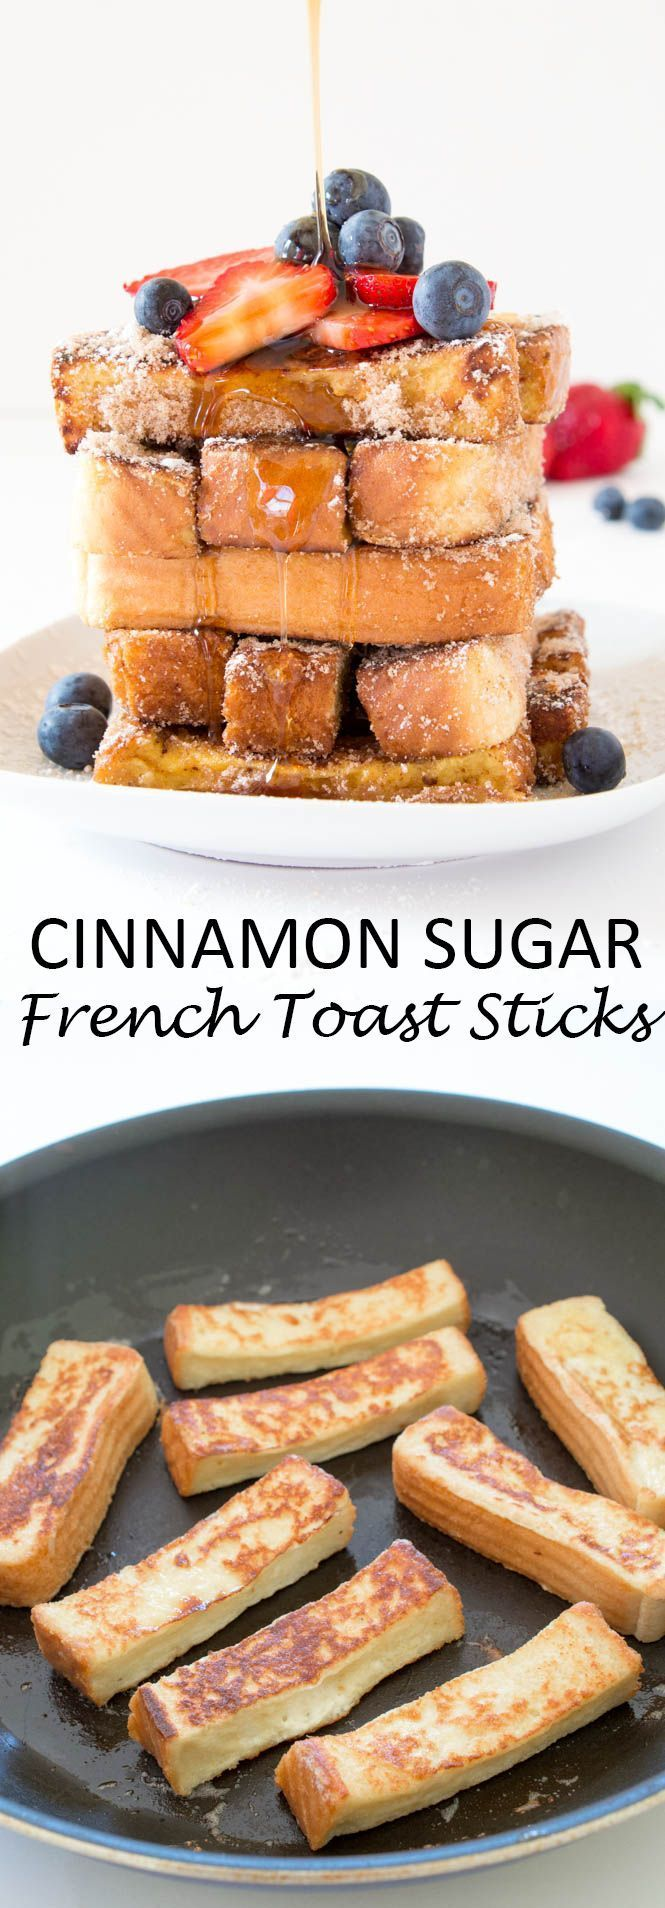 Super Easy Cinnamon Sugar French Toast Sticks. They take less than 15 minutes to make and are so much better than store-bought! Caramelized on the outside and fluffy on the inside!